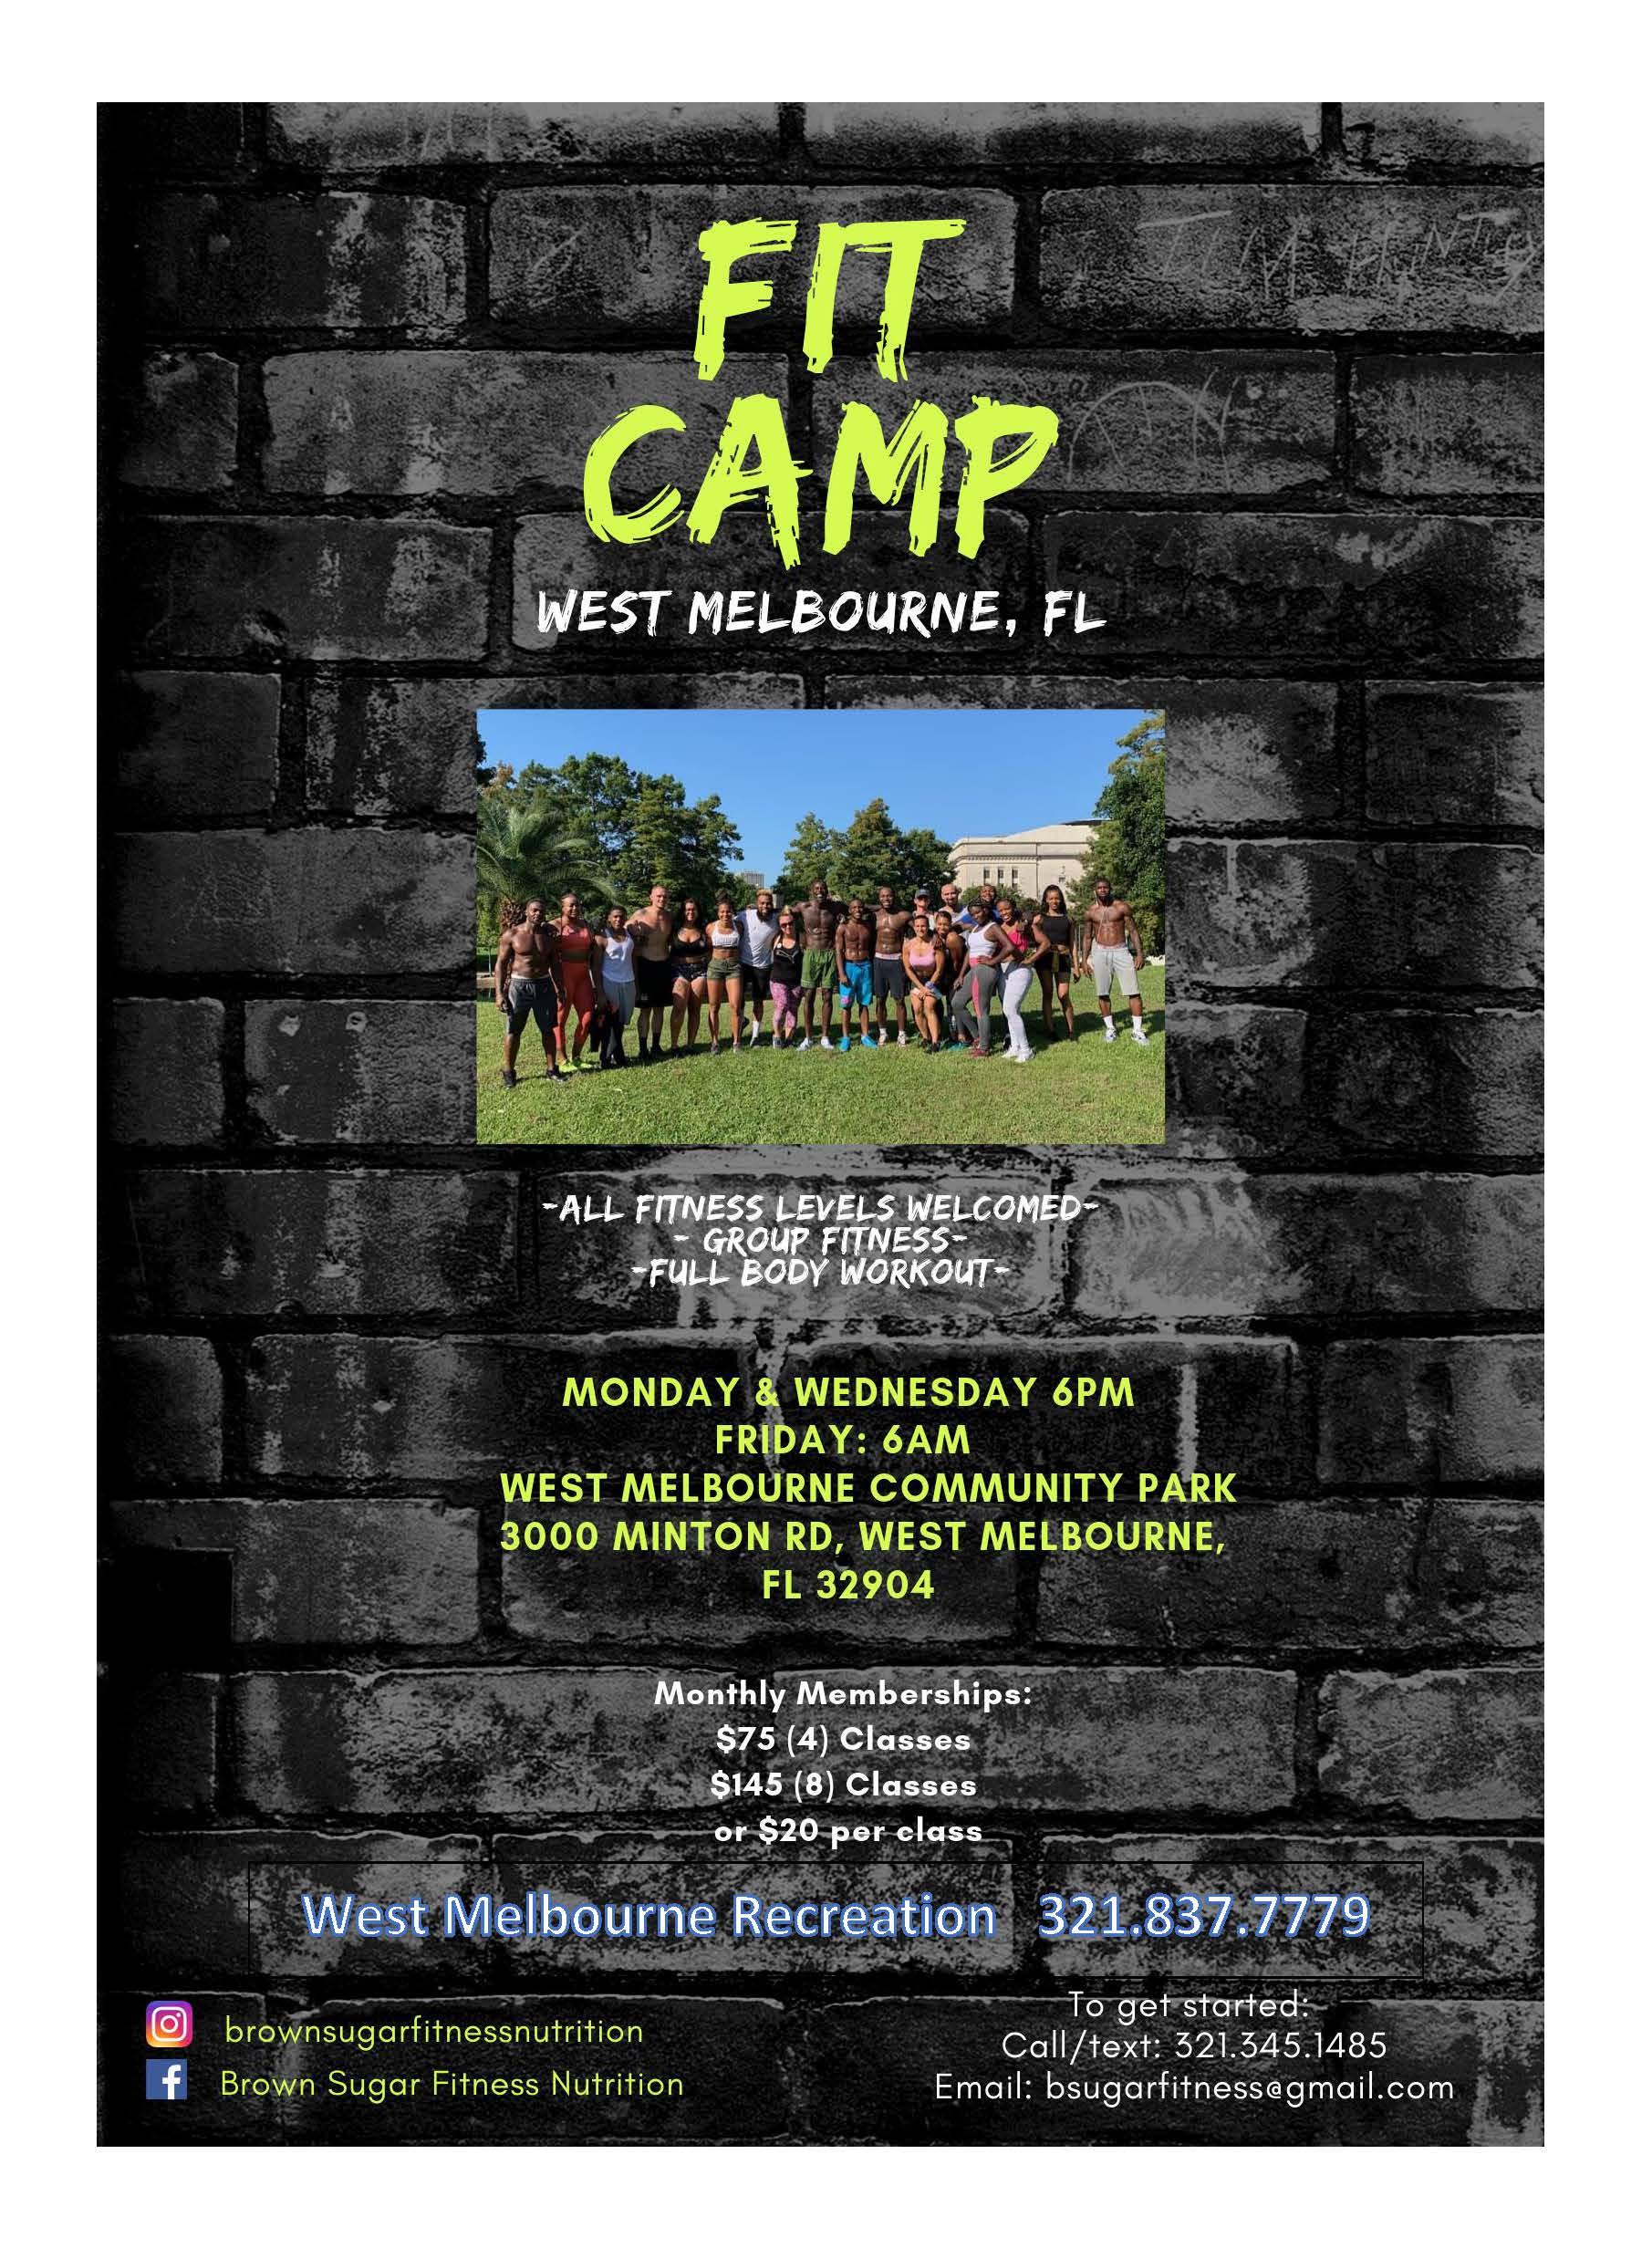 Fit Camp wm info